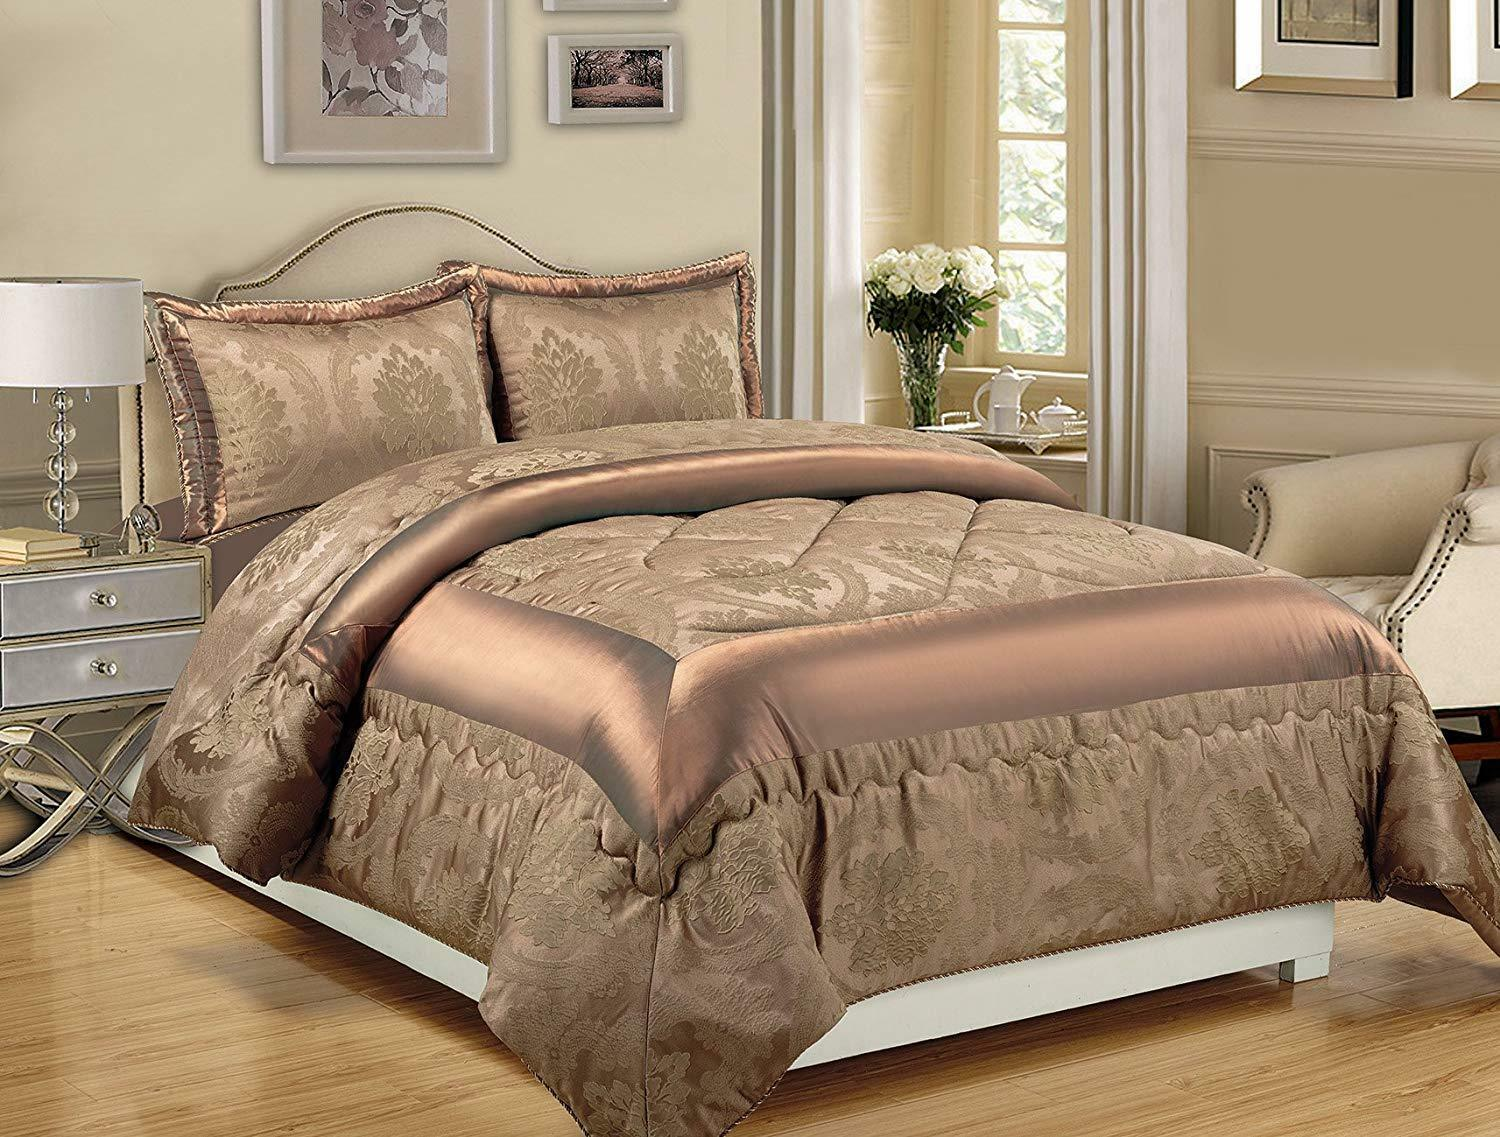 Betty 3Pc Jacquard Quilted Bedspread Comforter Bedding Set & 2 Pillow Cases